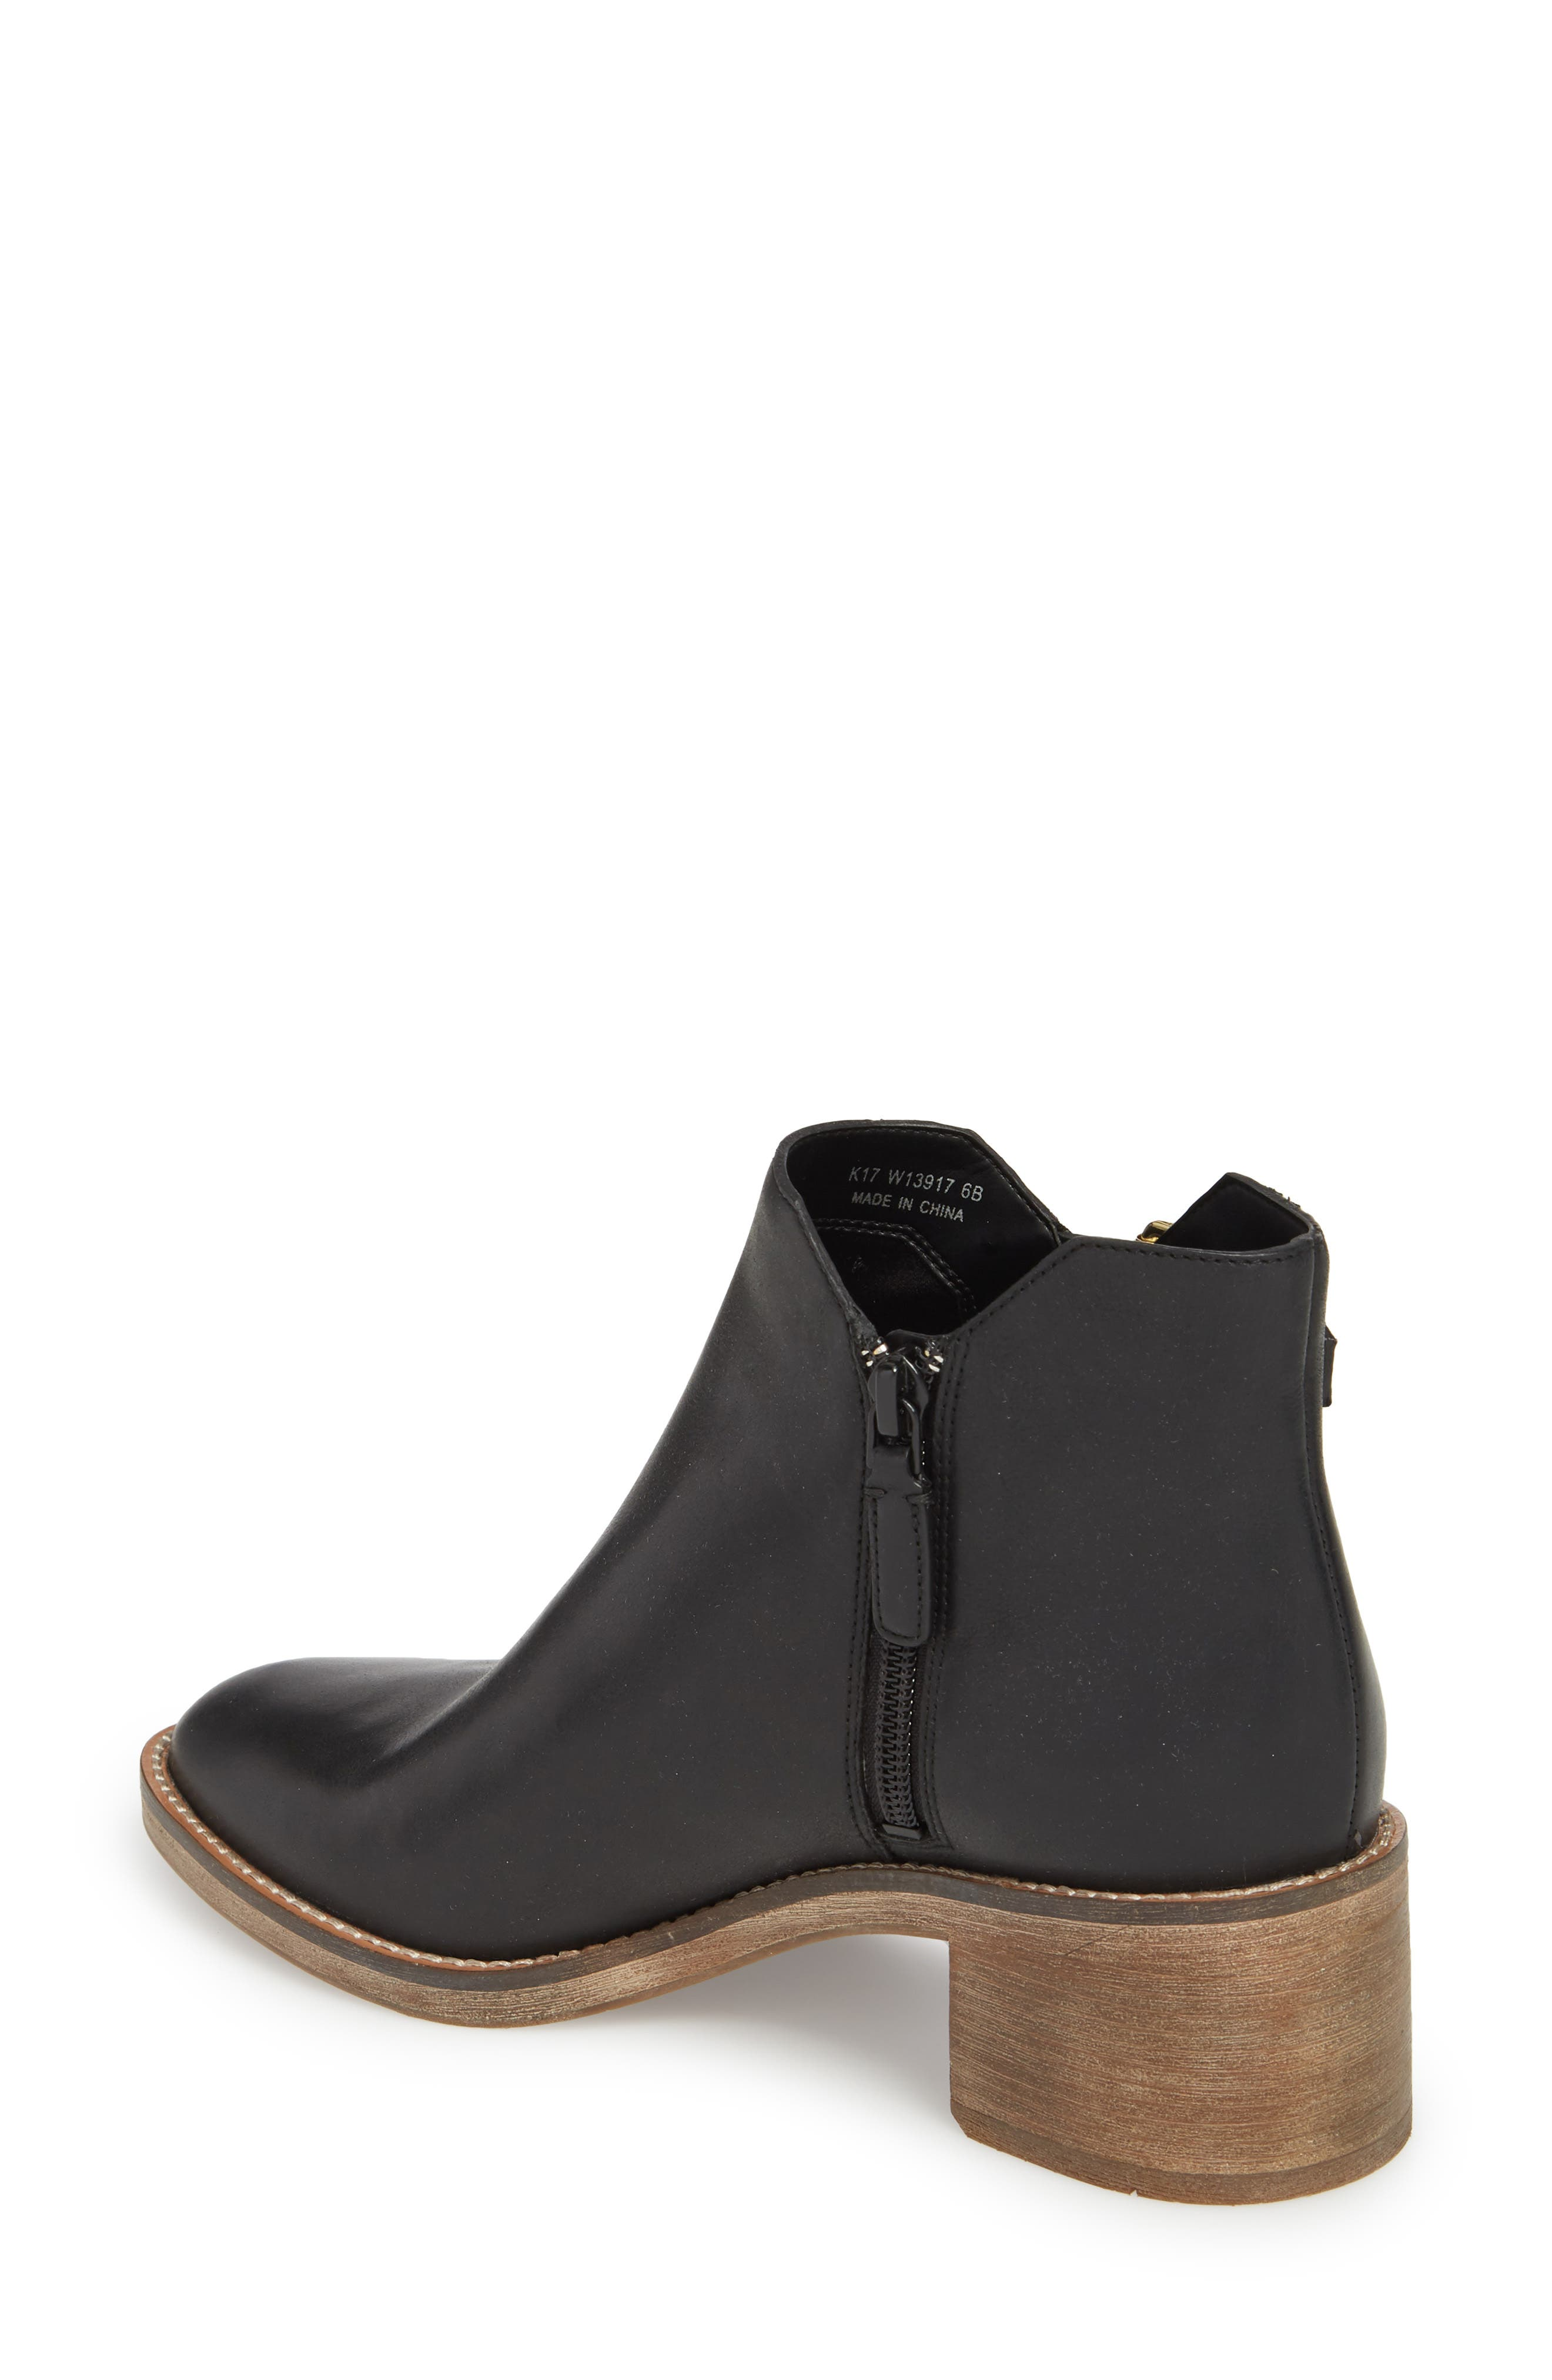 COLE HAAN, Harrington Grand Buckle Bootie, Alternate thumbnail 2, color, BLACK LEATHER